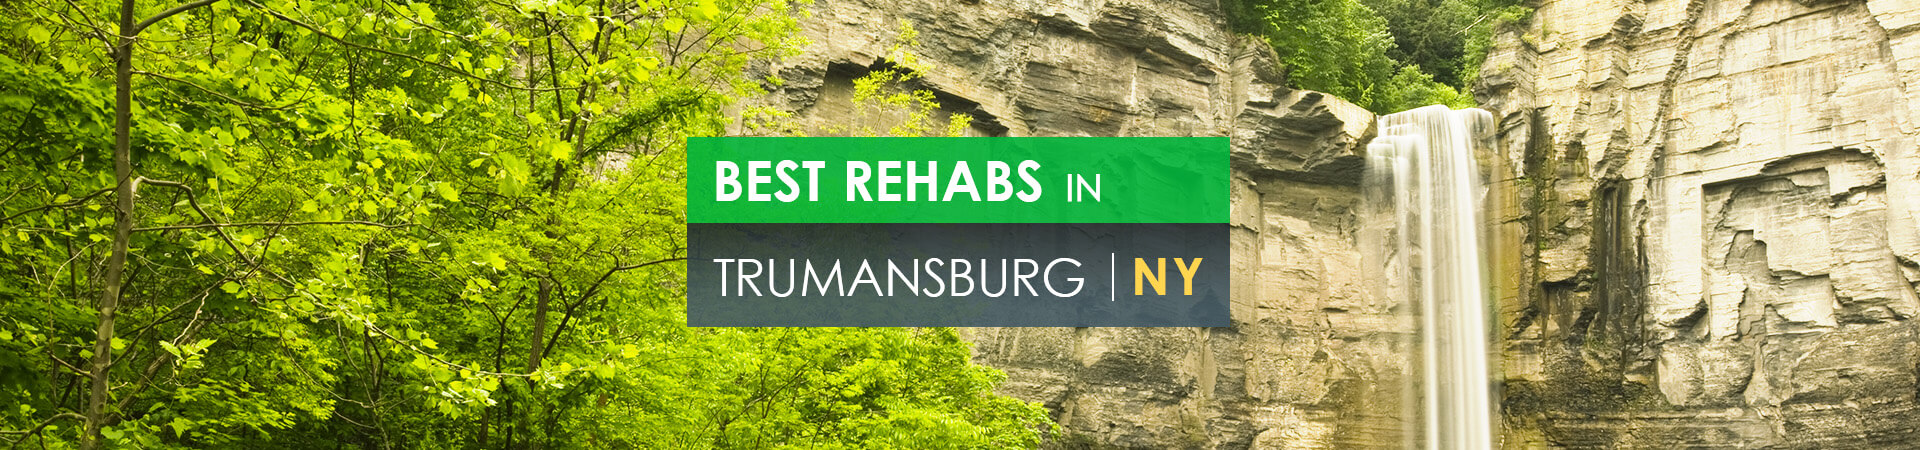 Best rehabs in Trumansburg, NY